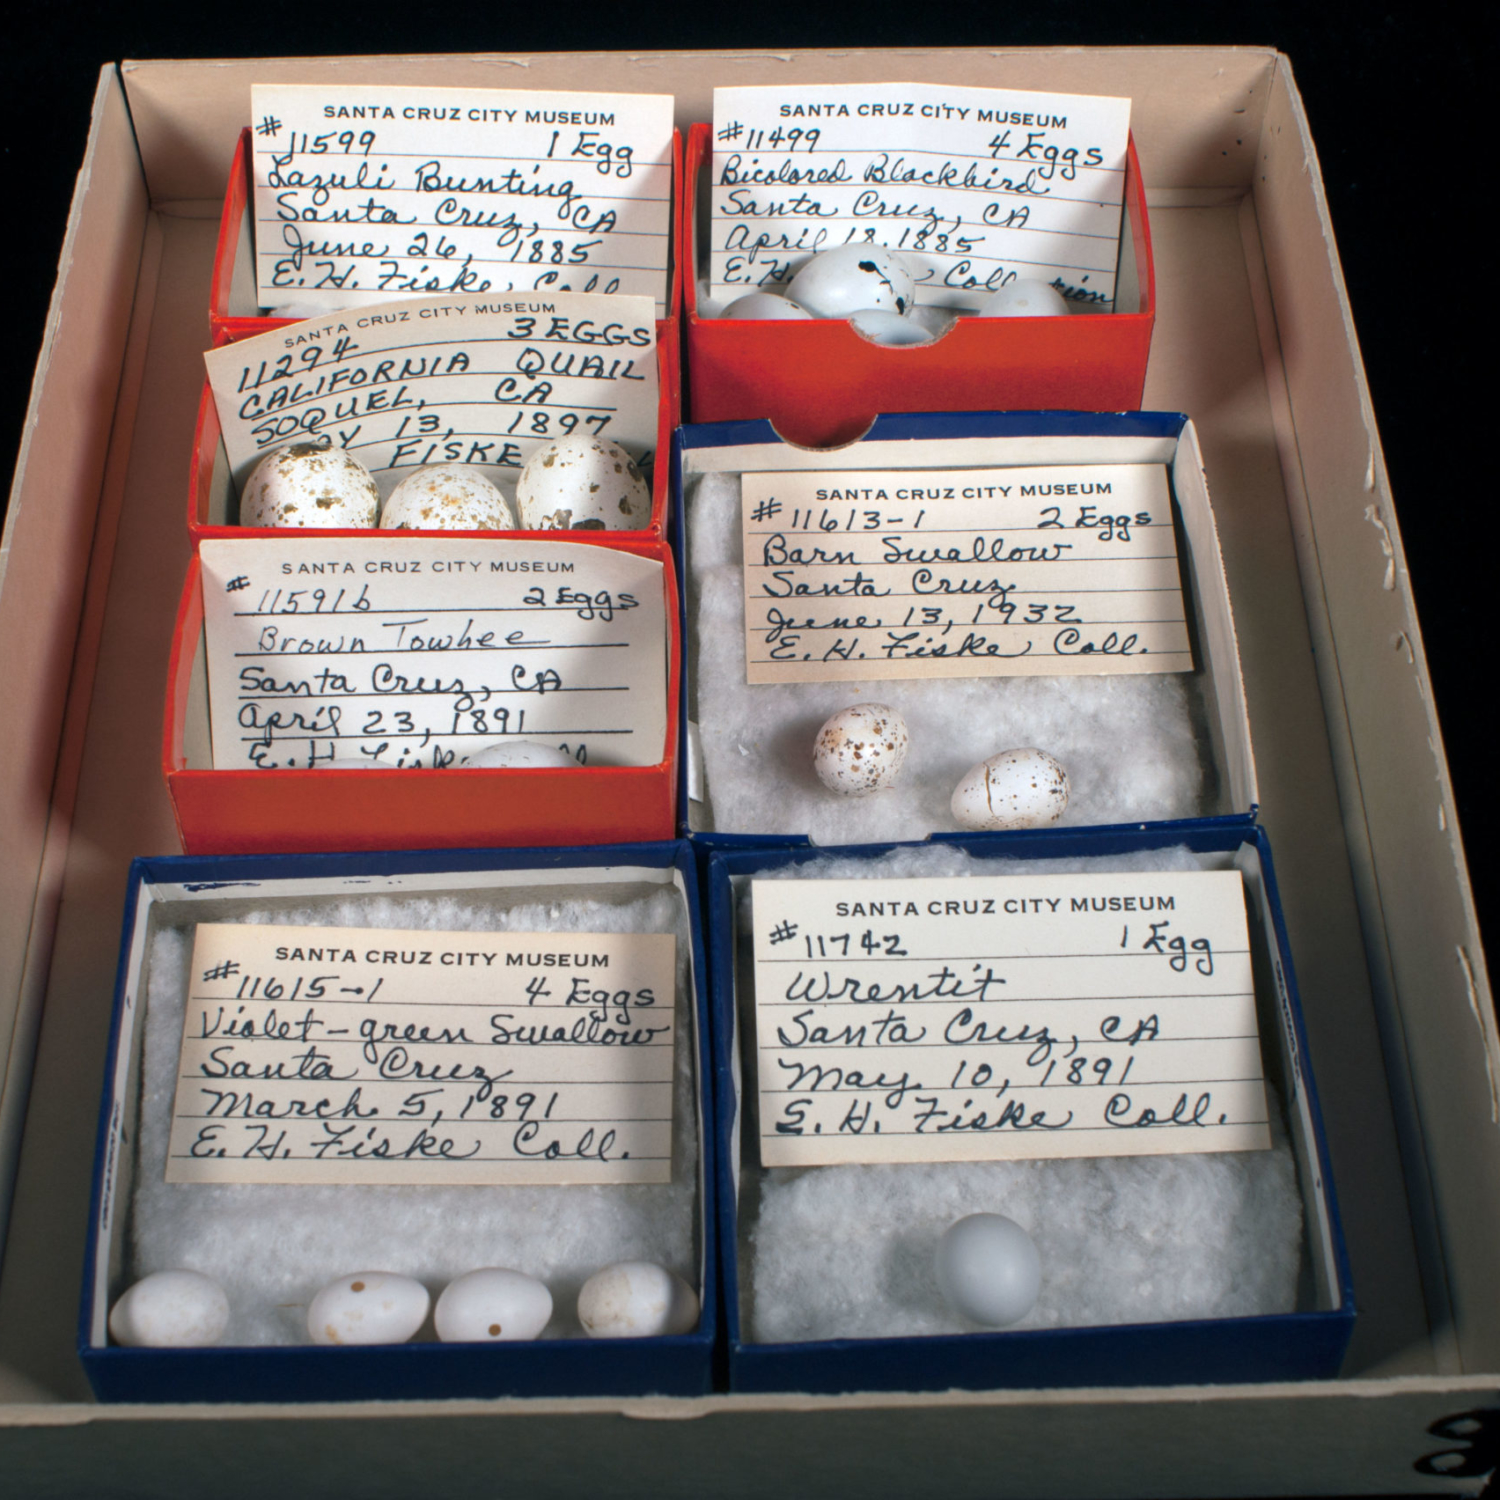 A tray with several bird egg specimens and catalog cards.